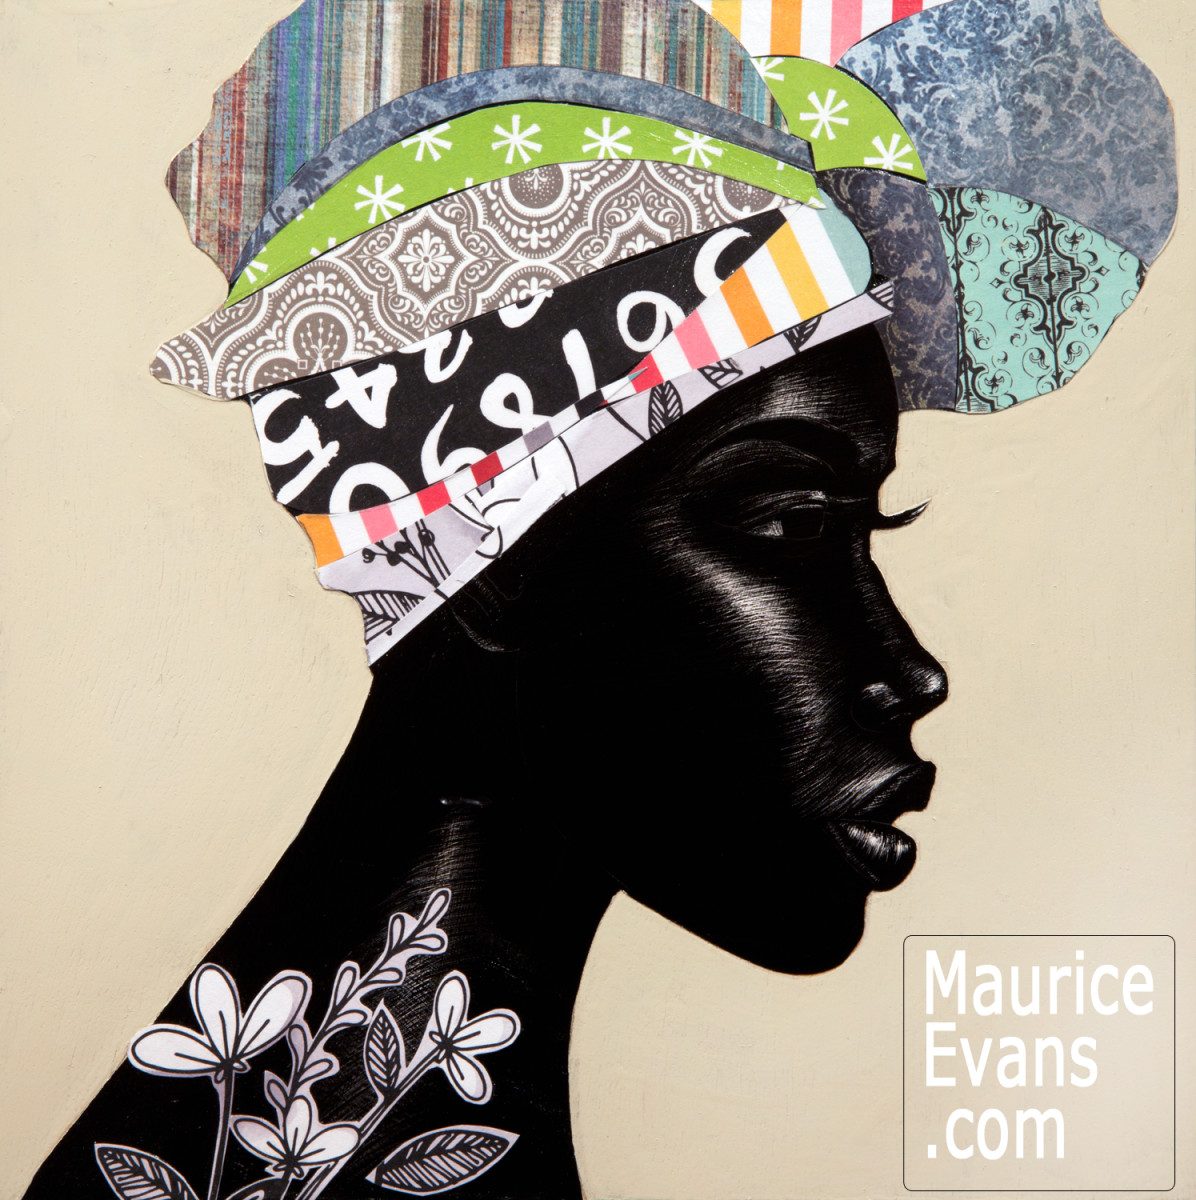 a-celebration-of-black-hair-with-artist-maurice-evans